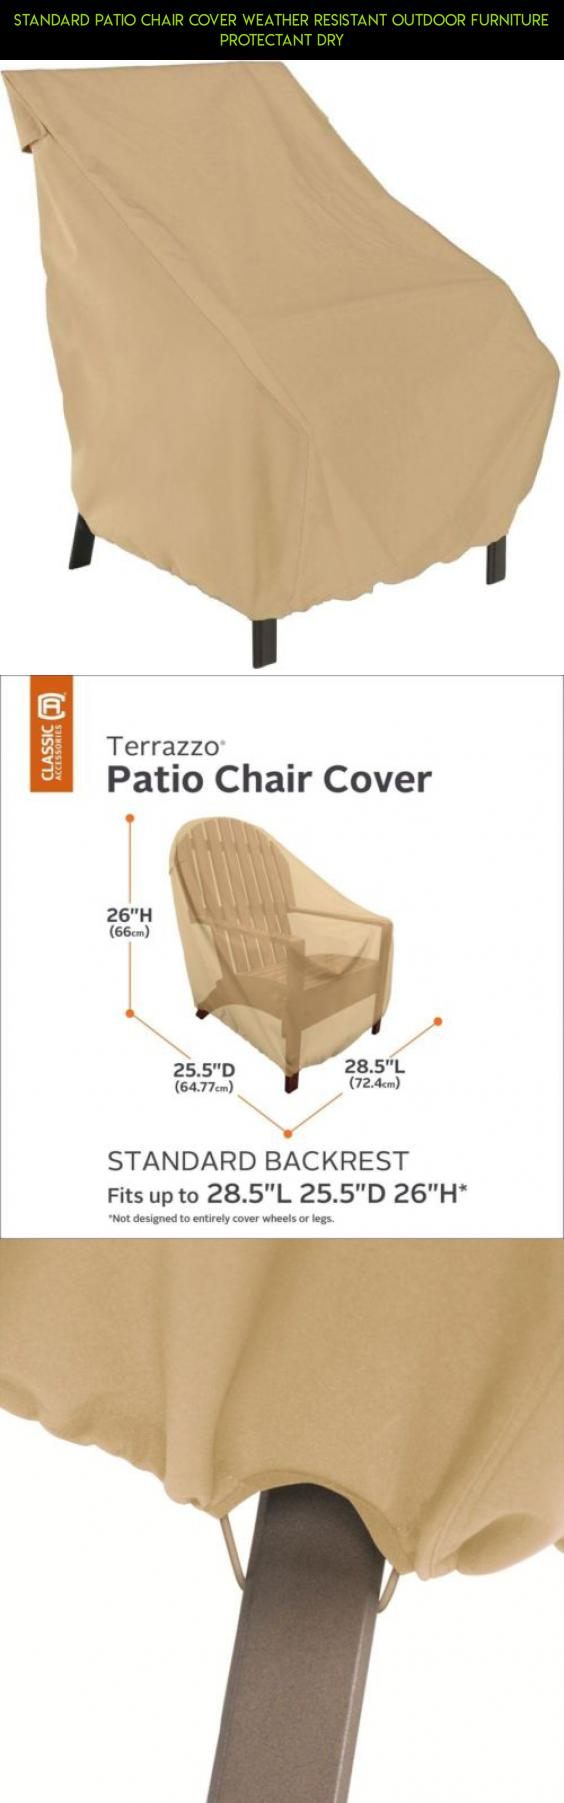 Exceptionnel Standard Patio Chair Cover Weather Resistant Outdoor Furniture Protectant  Dry #plans #tech #drone